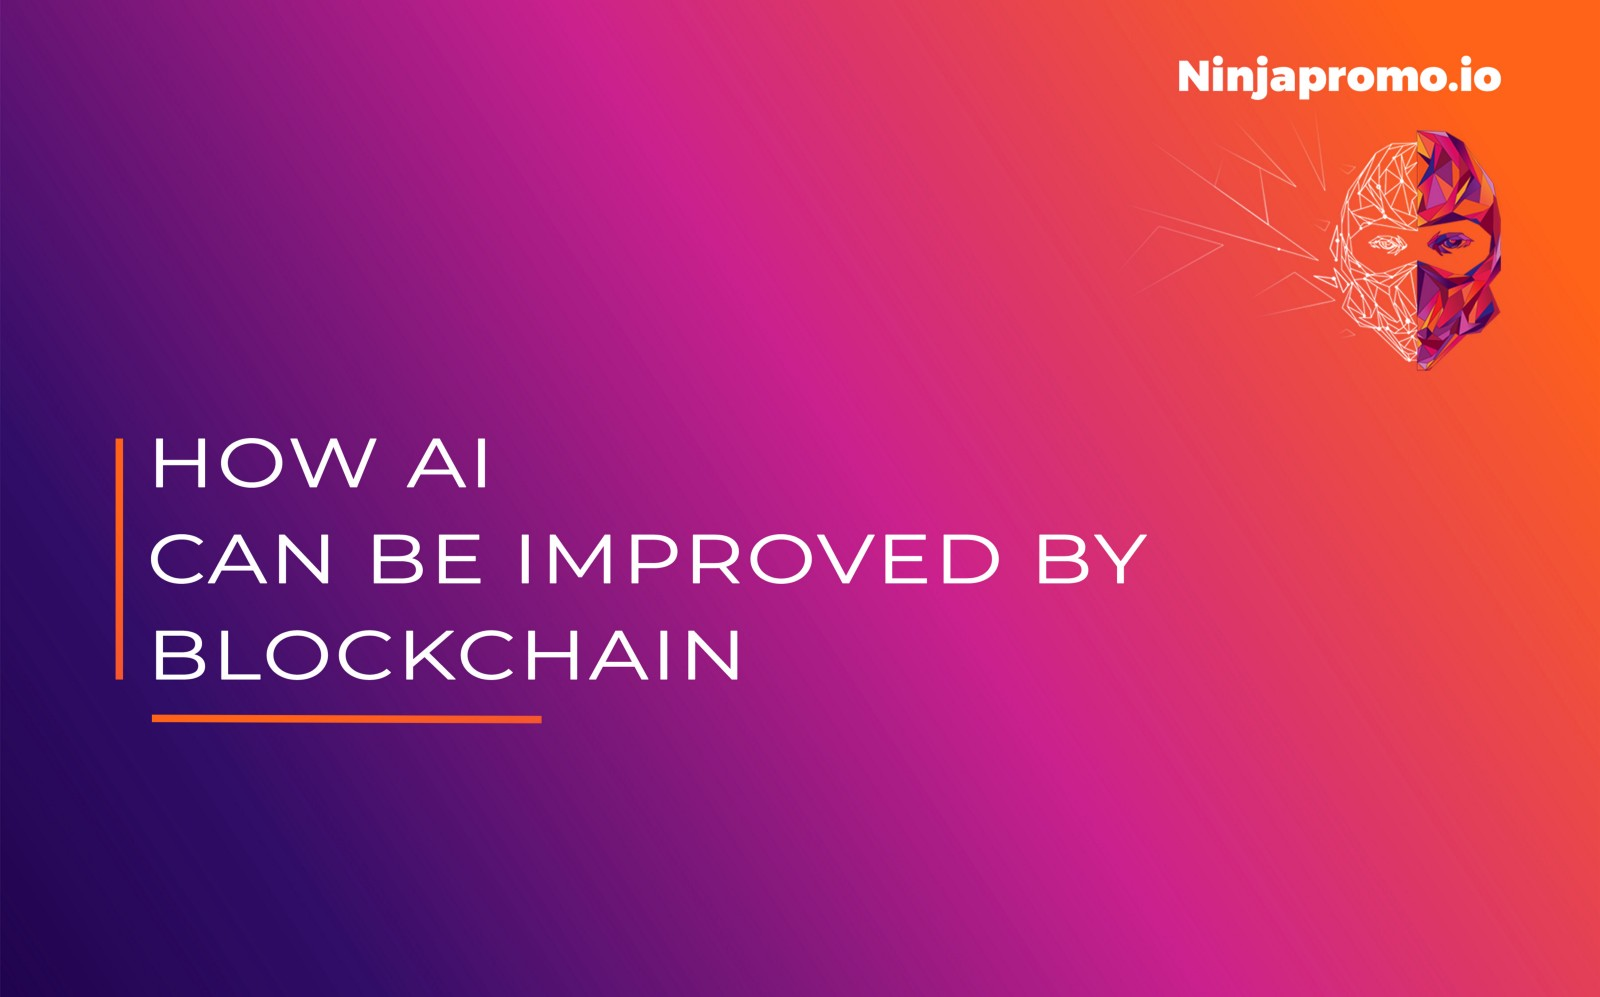 /how-ai-can-be-improved-by-blockchain-591a2fb7095e feature image